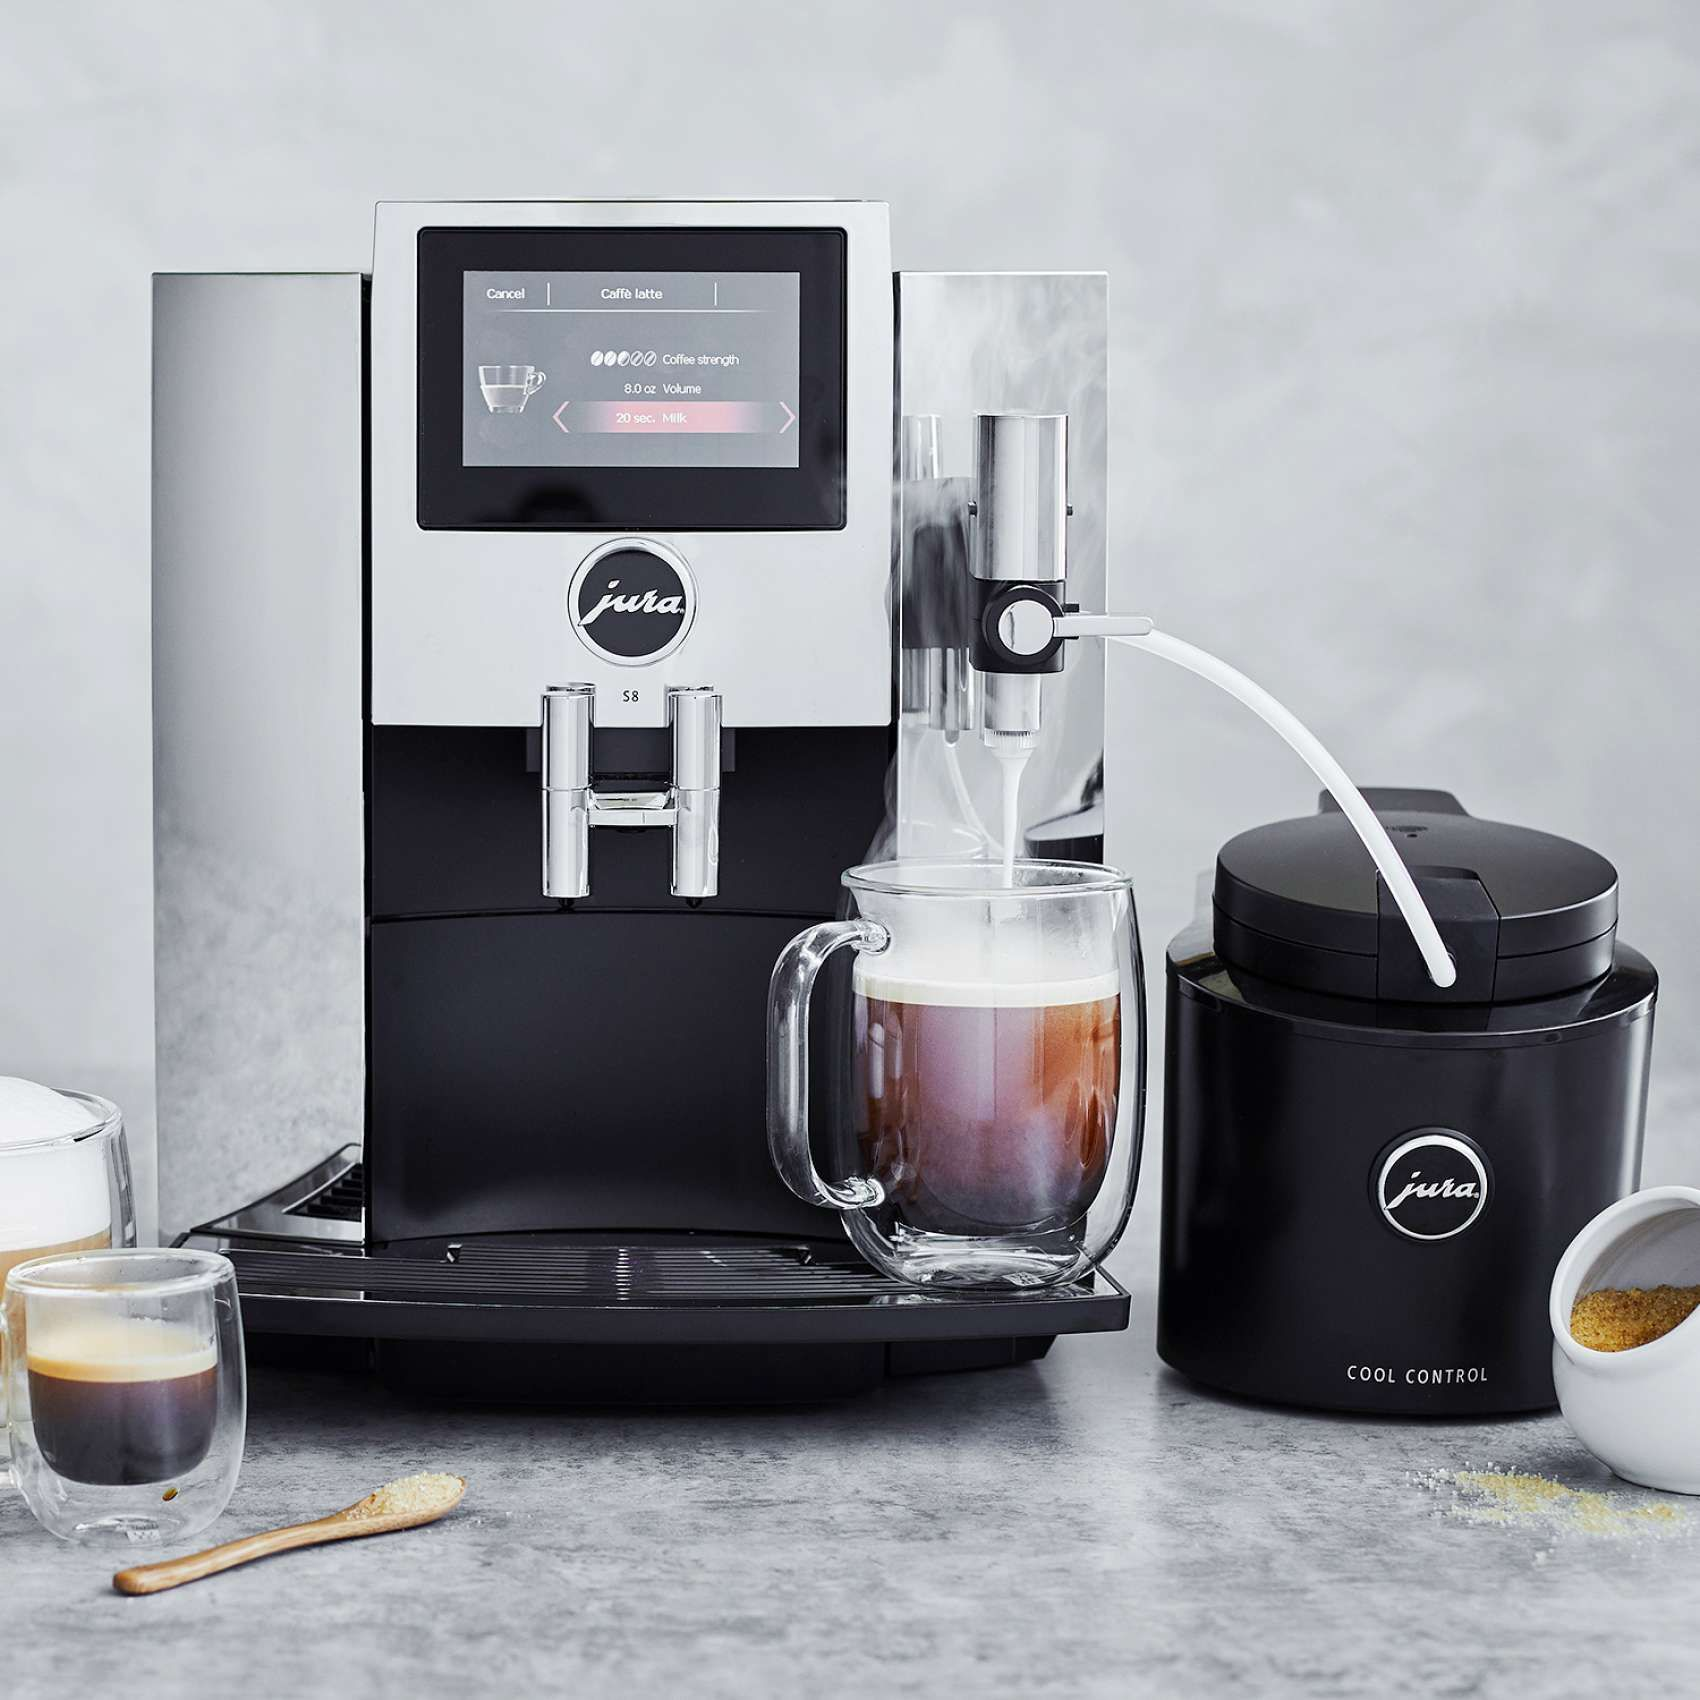 JURA S8 Coffee Machine